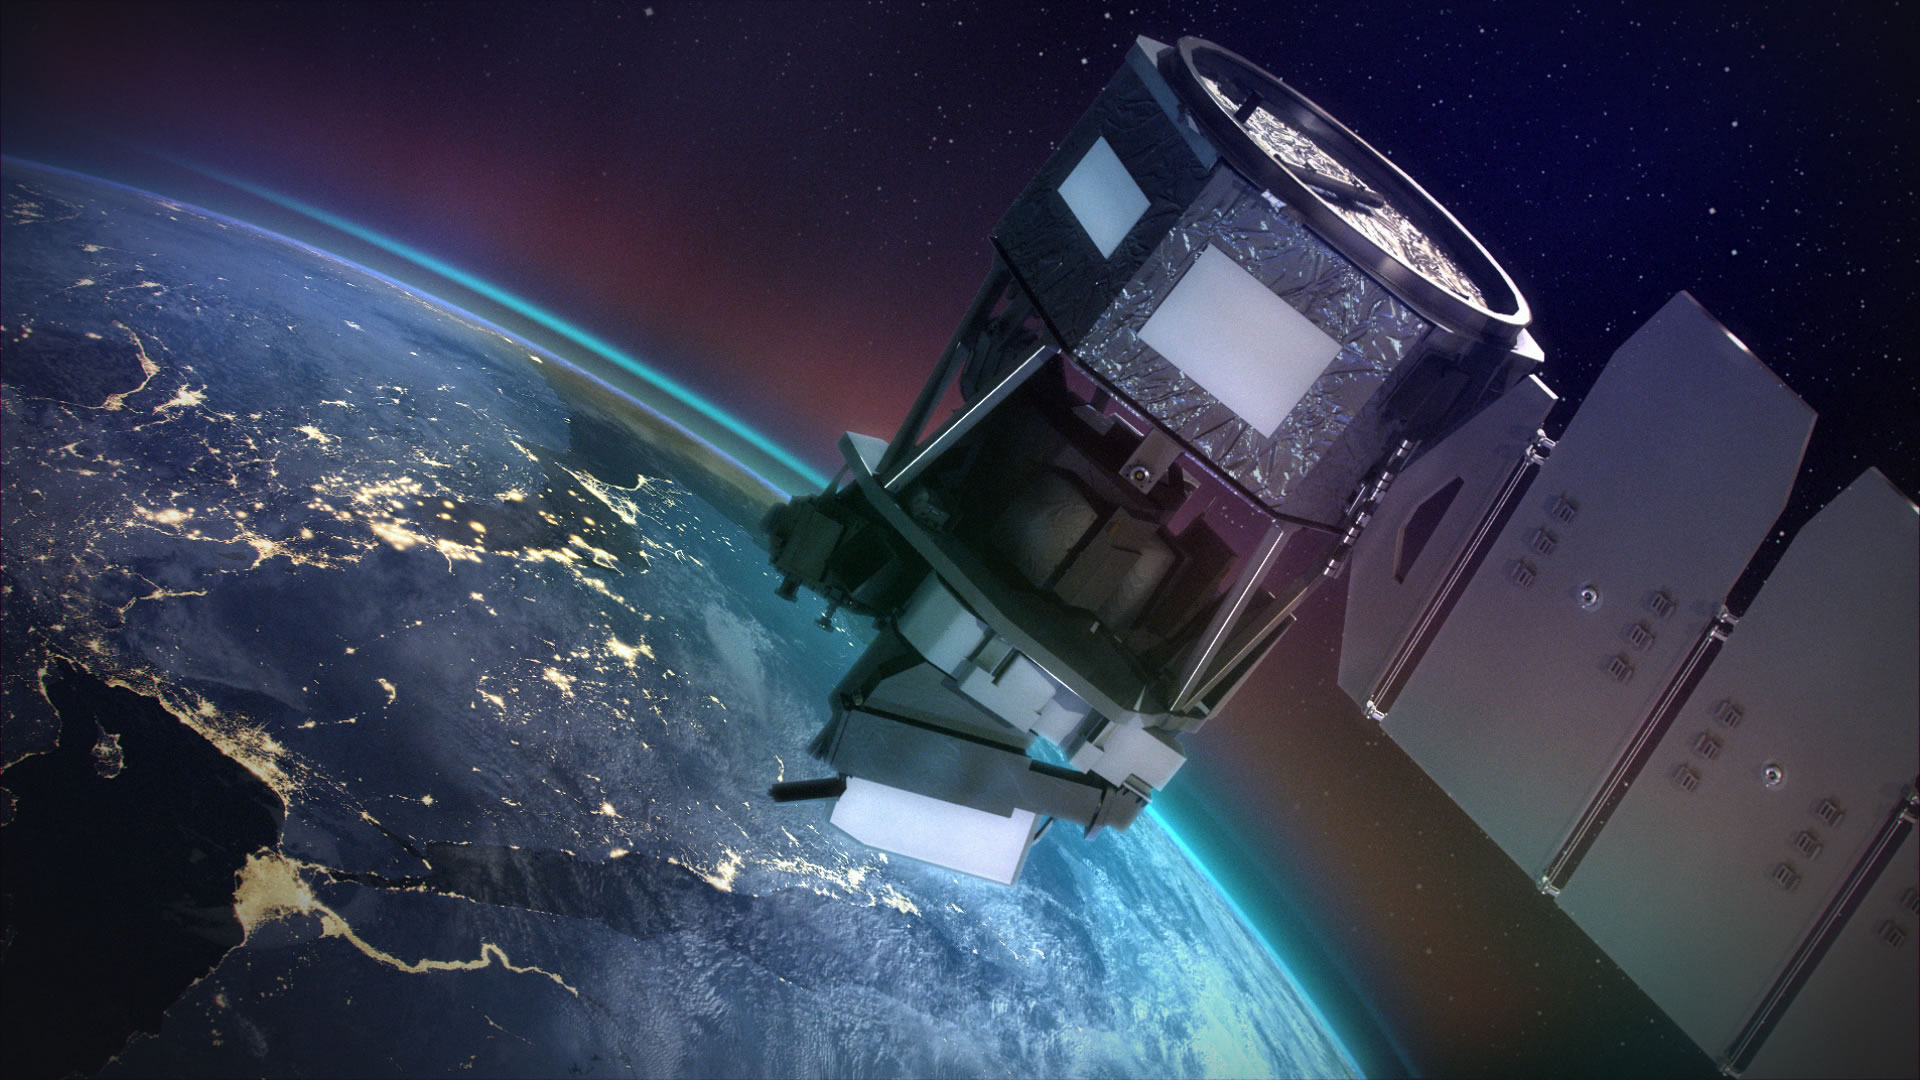 NASAs Transiting Exoplanet Survey Satellite TESS embarked in April 2018 on a twoyear mission to seek out new planets and possibly extraterrestrial